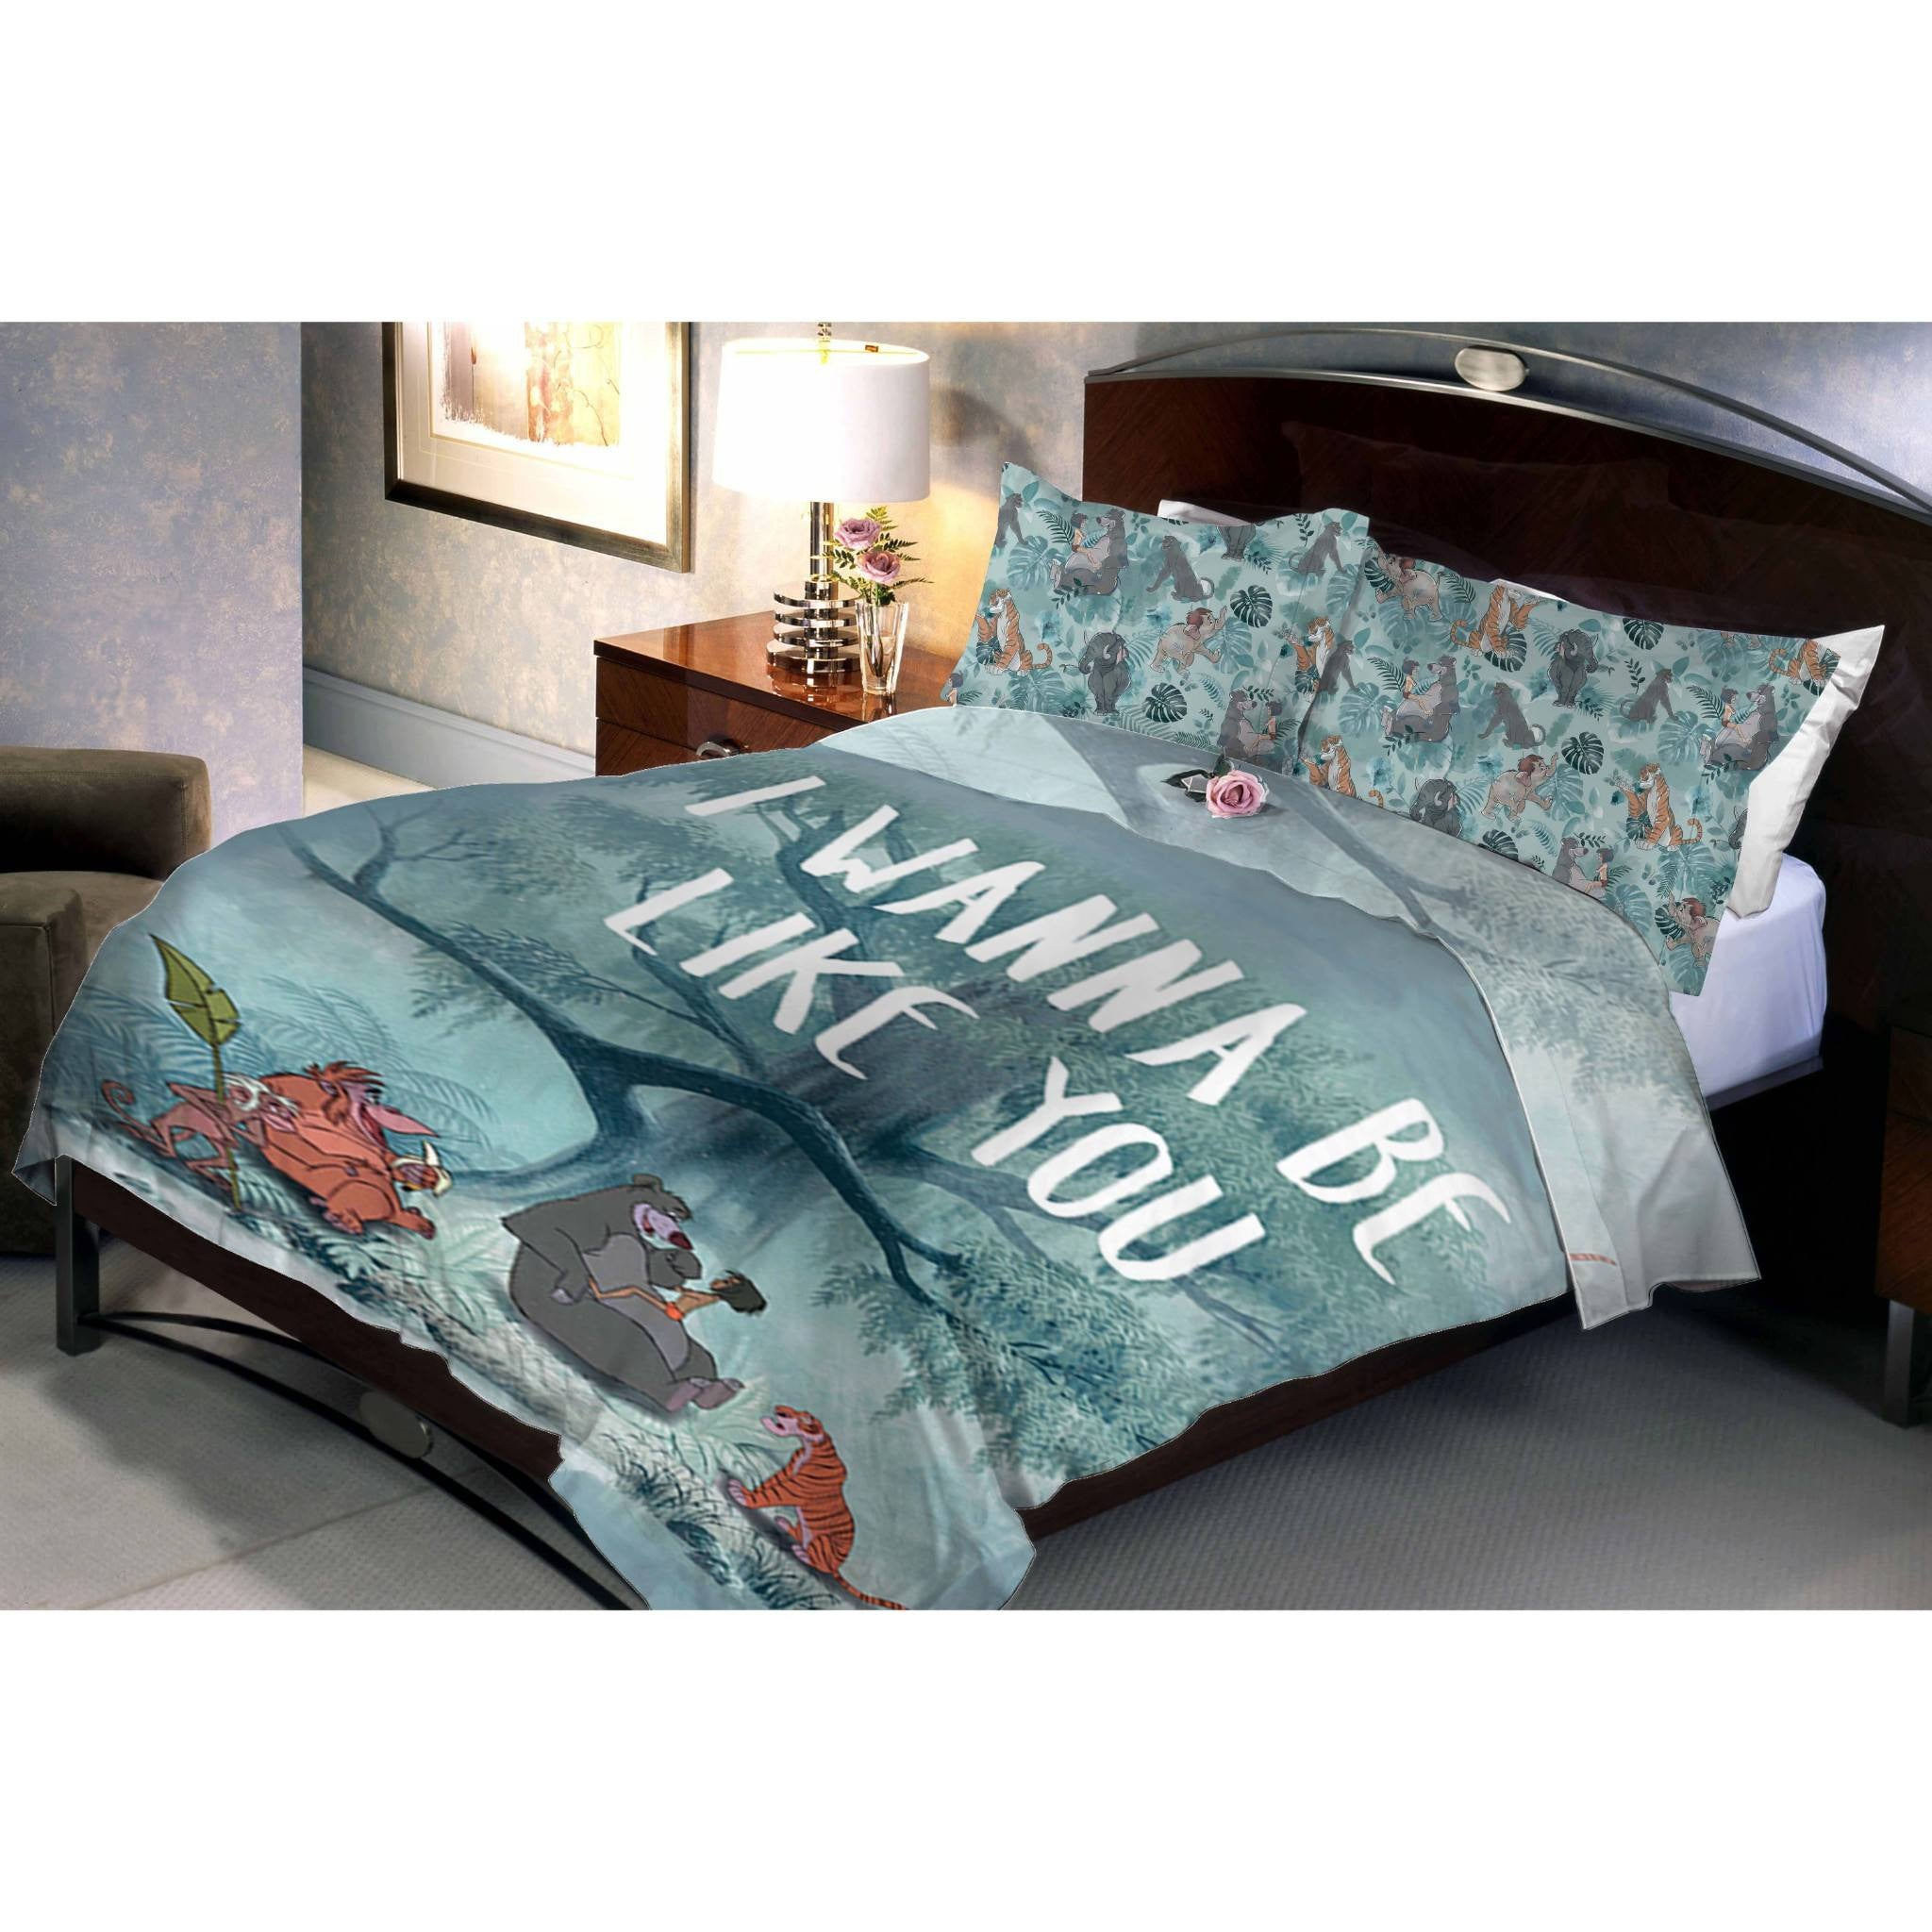 Disney Jungle Book Double Bedsheet With 2 Pillow Covers - Über Urban Bedsheet